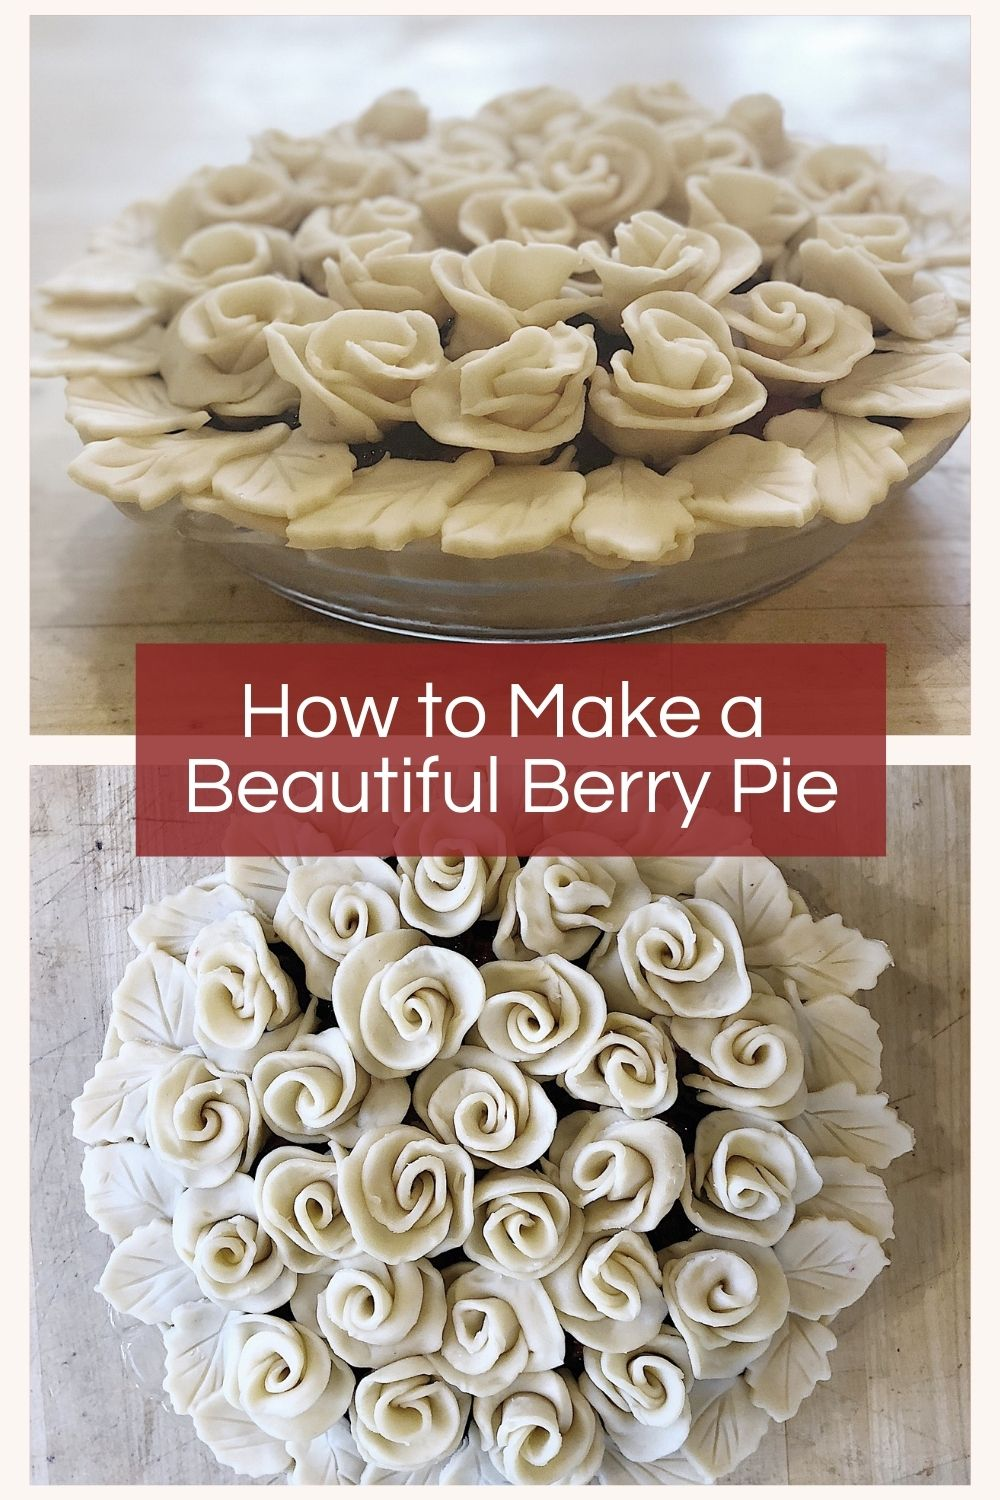 Today I am sharing my favorite recipe for Berry Pie. I feel very strongly that if you are going to make a pie, why not make it beautiful? I can t wait to share how to make this wonderful pie.